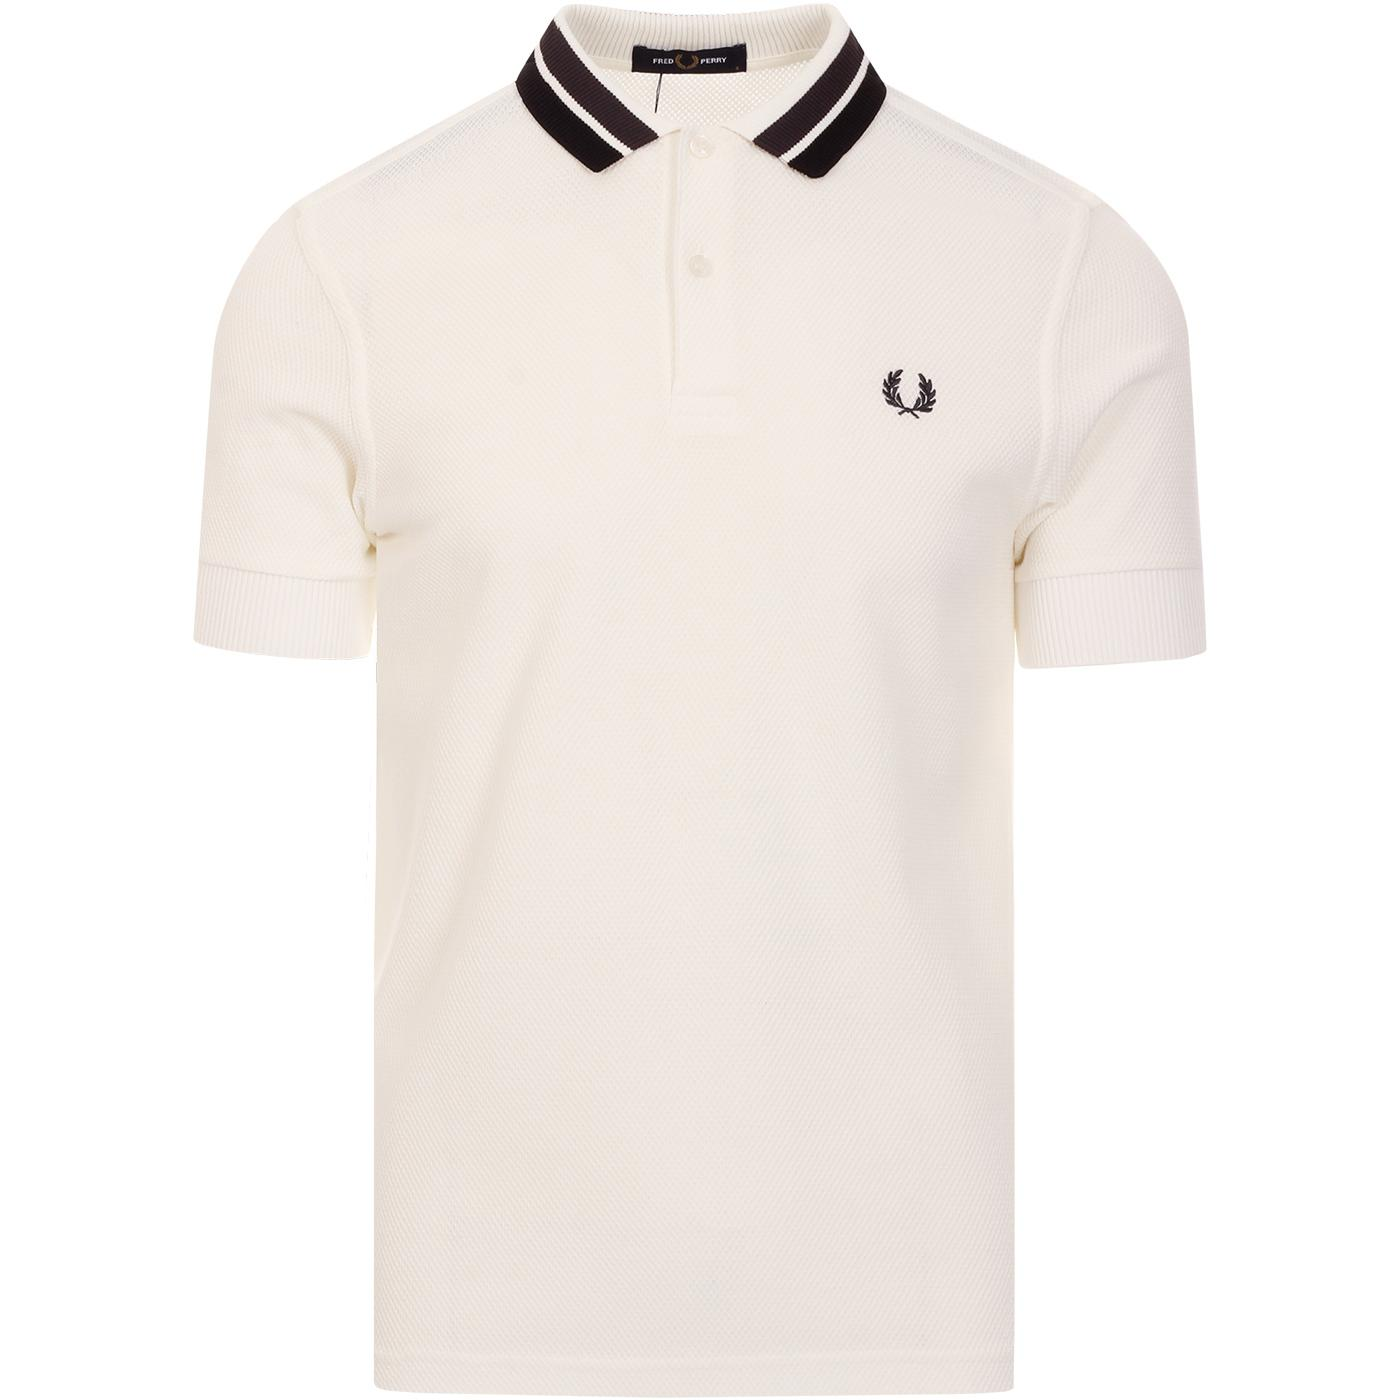 FRED PERRY Mod Bold Tipped Textured Polo Top WHITE